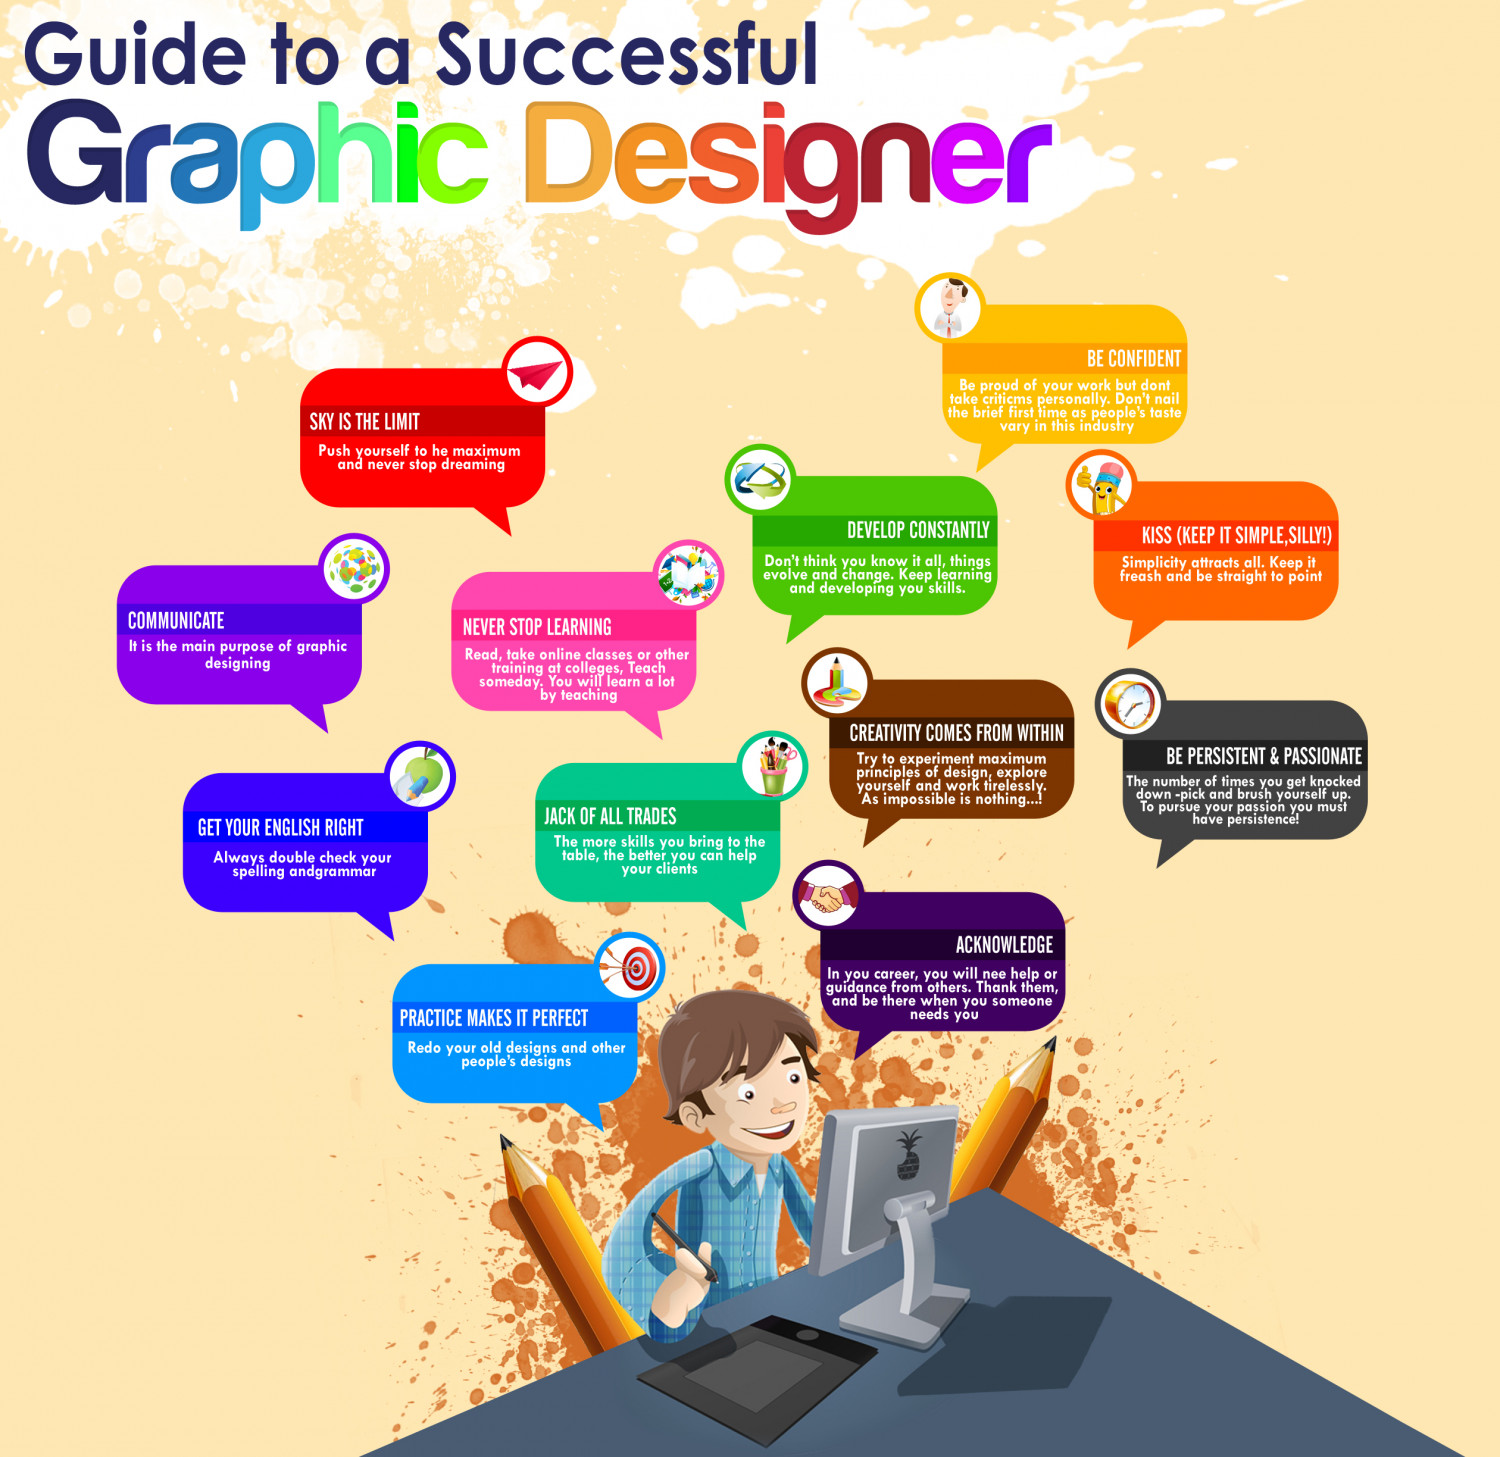 Guide to A Successful Graphic Designer Infographic